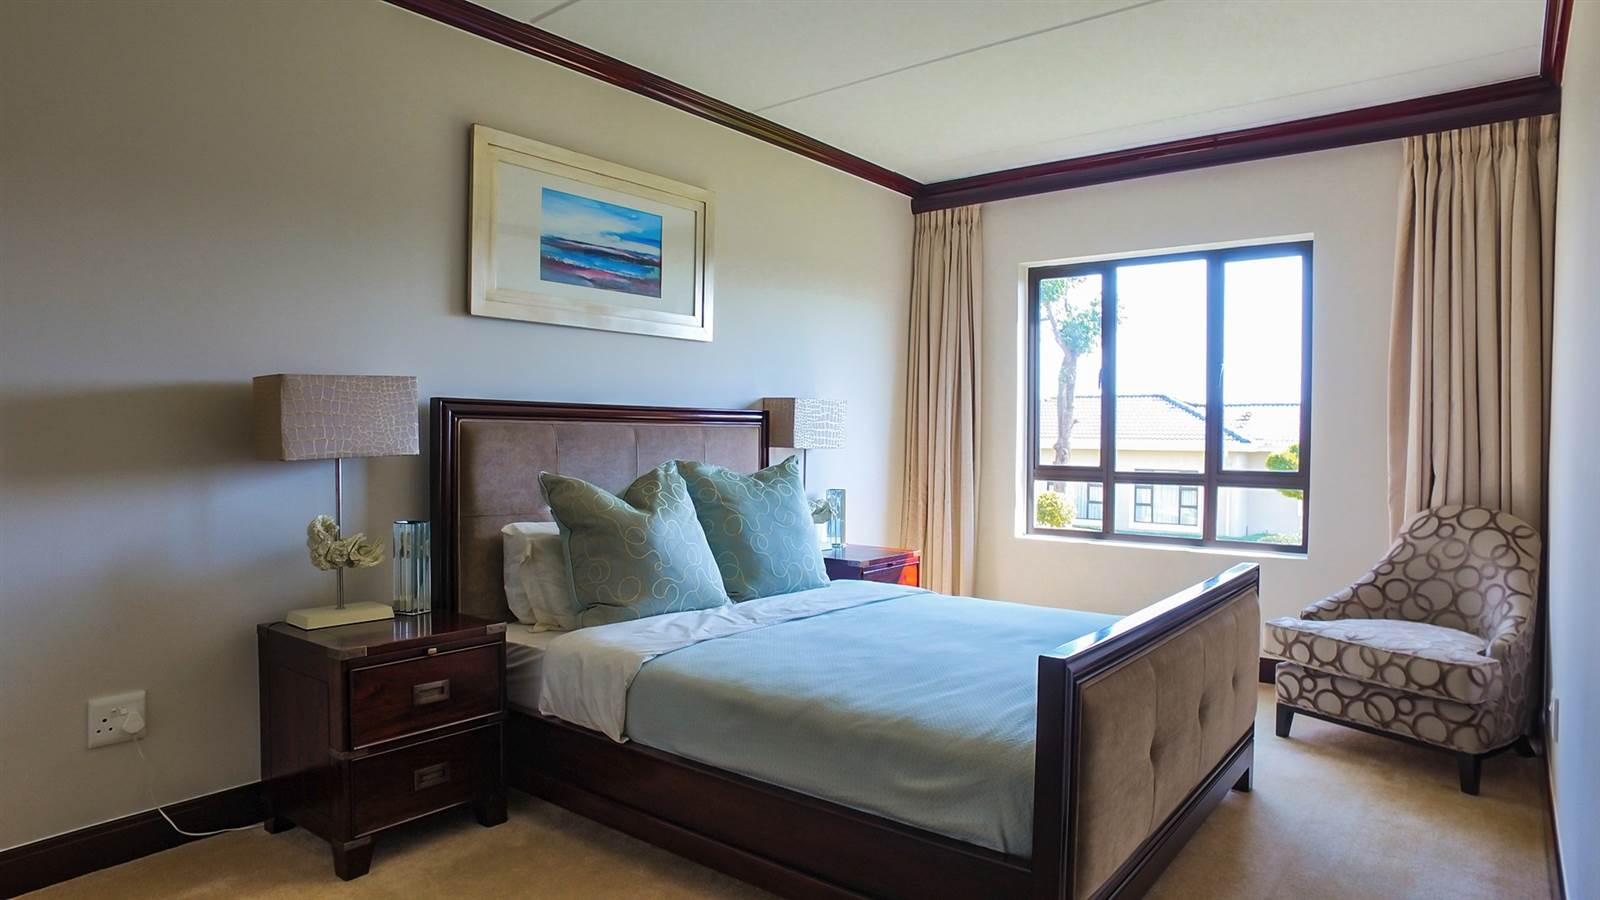 2 Bedroom Apartment for sale in Fourways ENT0040134 : photo#13